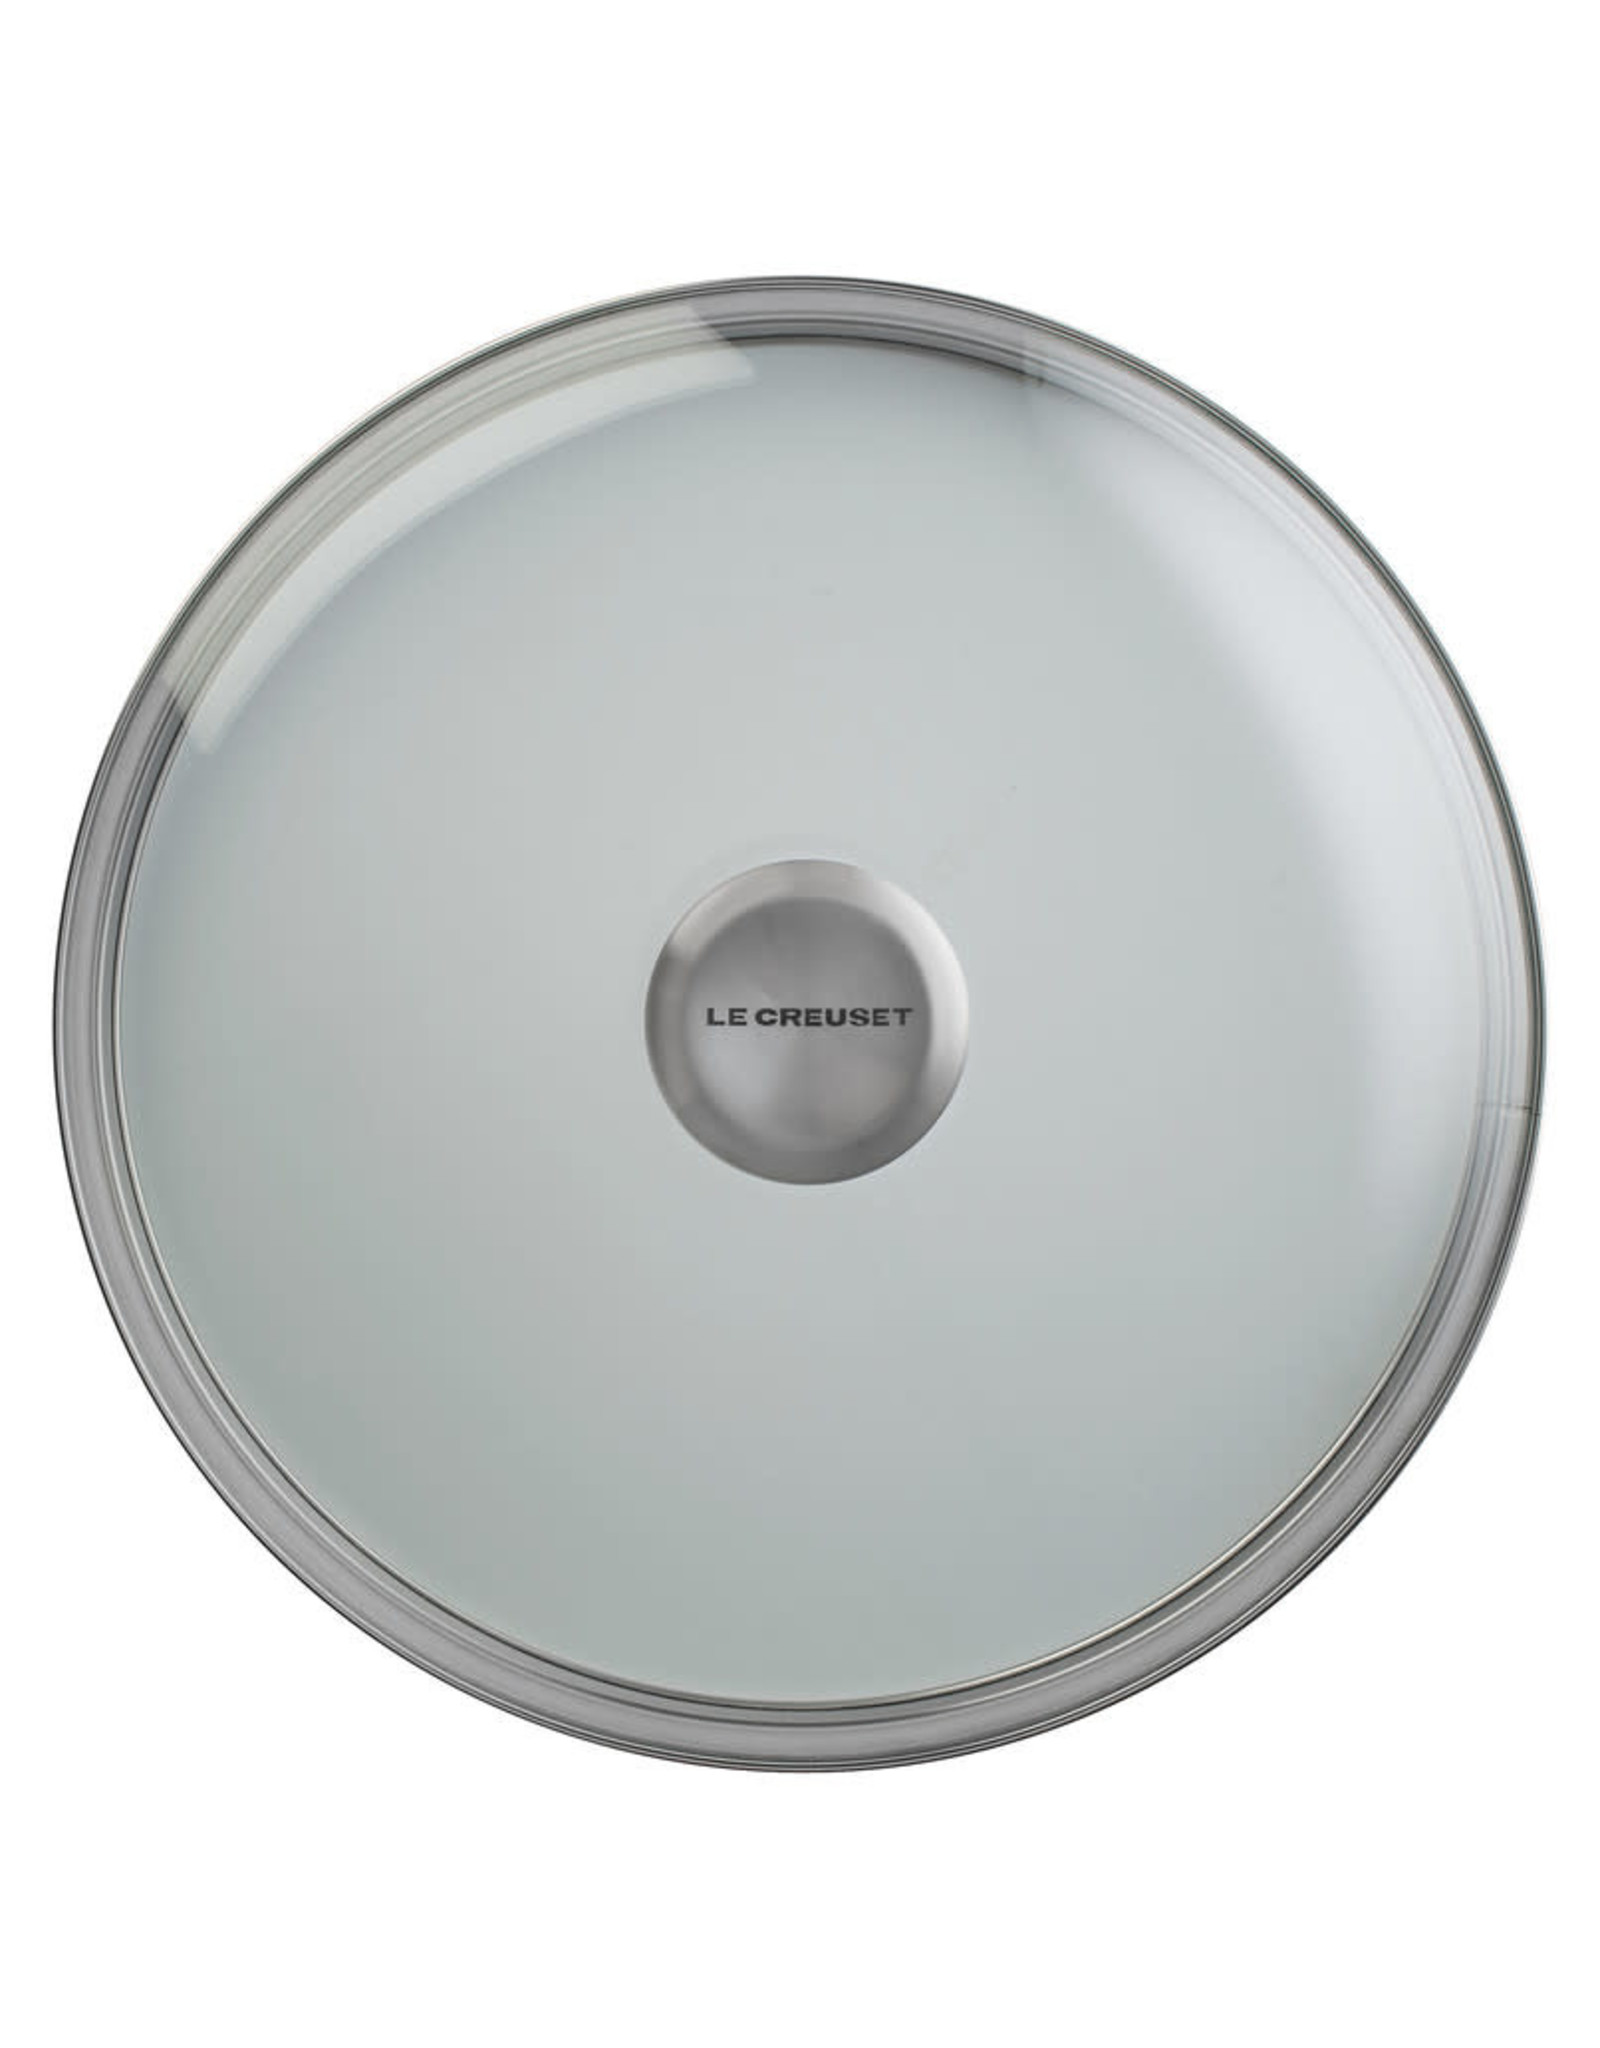 "Le Creuset Le Creuset 10"" Glass Lid w/ Stainless Steel Knob (fits TNS & SS)"